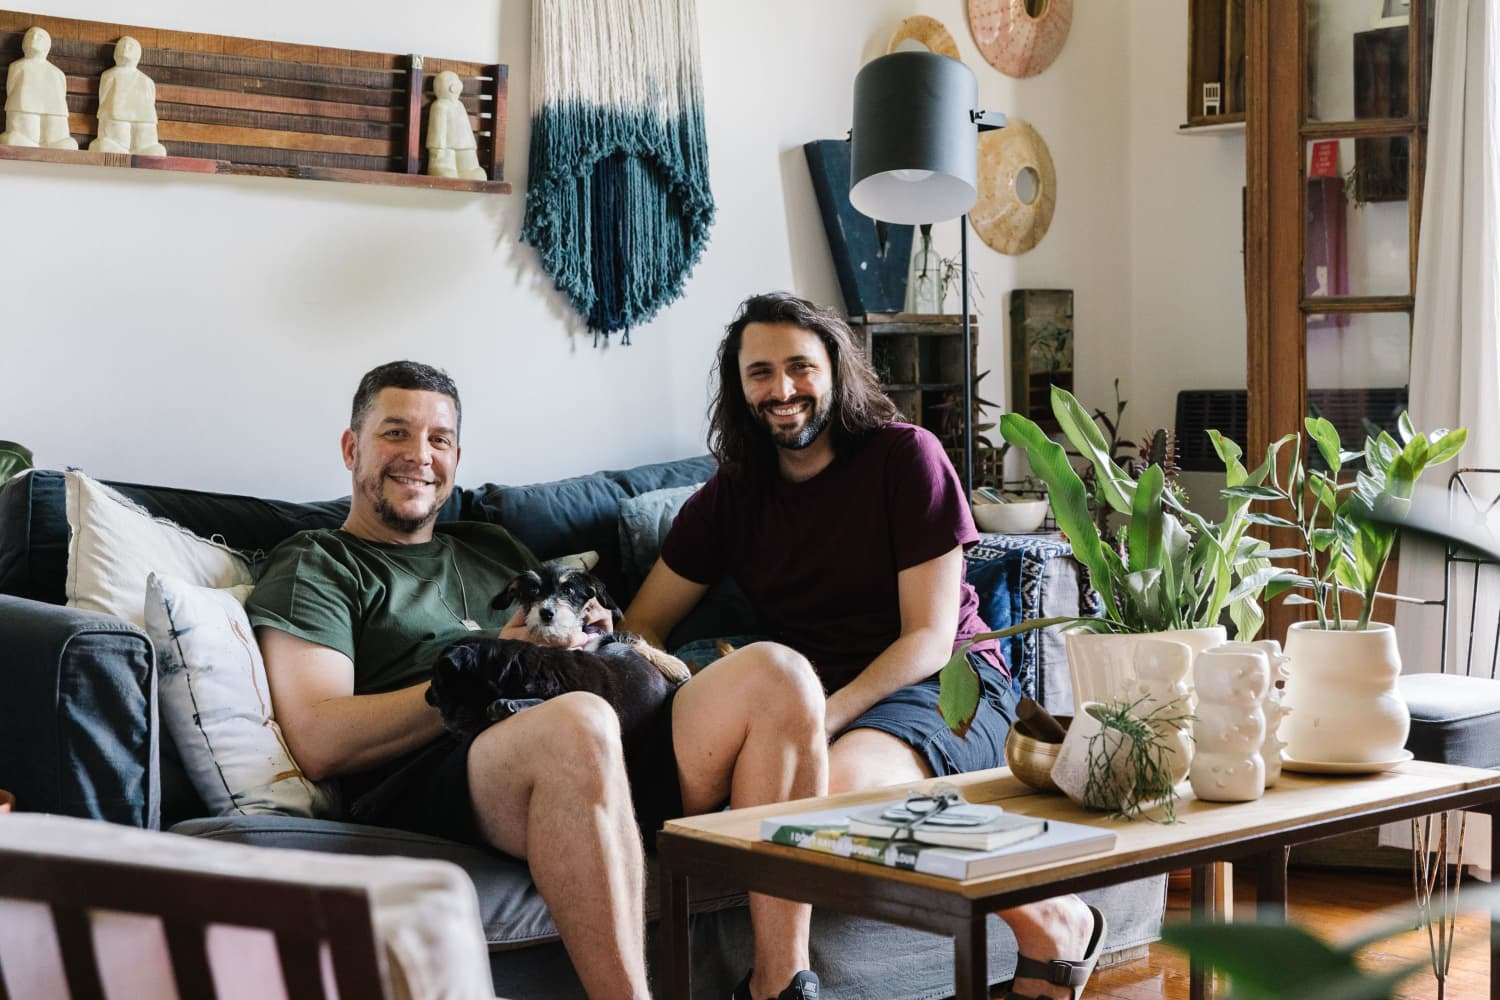 Two 'Plantrepreneurs' Have Crafted an Incredibly Covetable Rental Apartment in Argentina